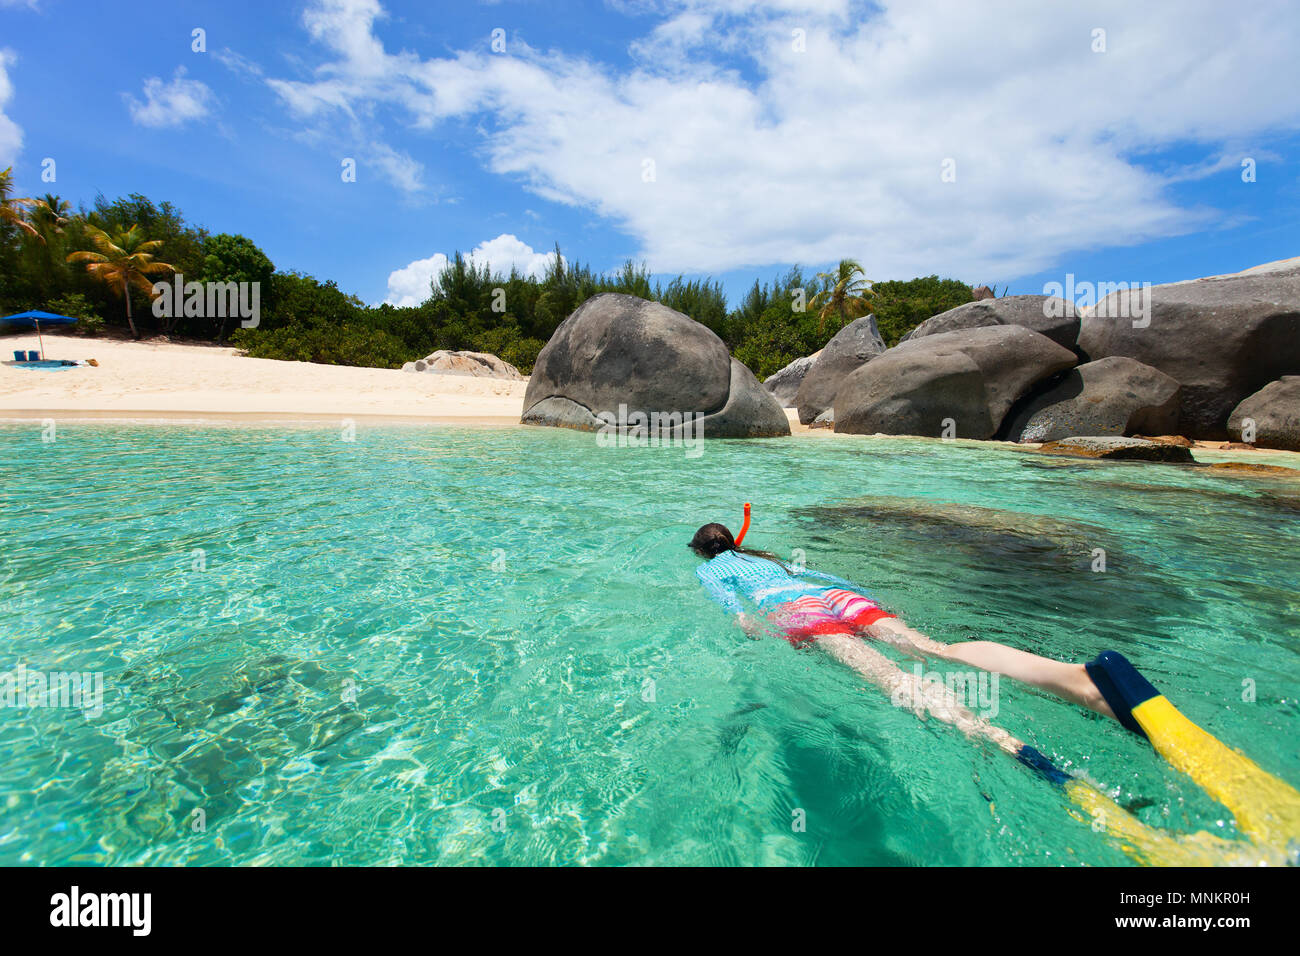 Young woman in sun protection swimwear snorkeling in turquoise tropical water at exotic island beach - Stock Image